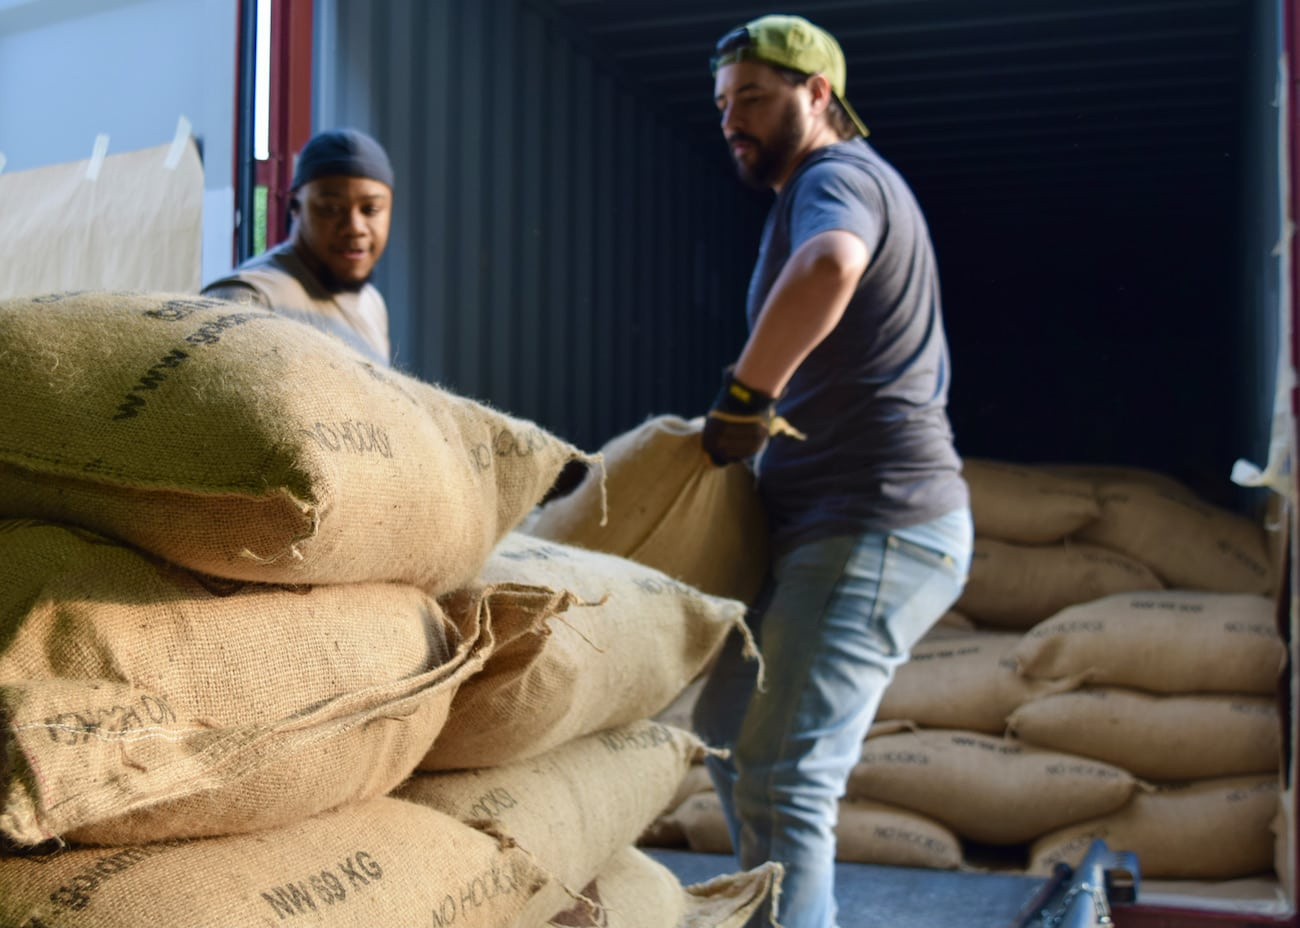 Unloading green coffee bags from a truck